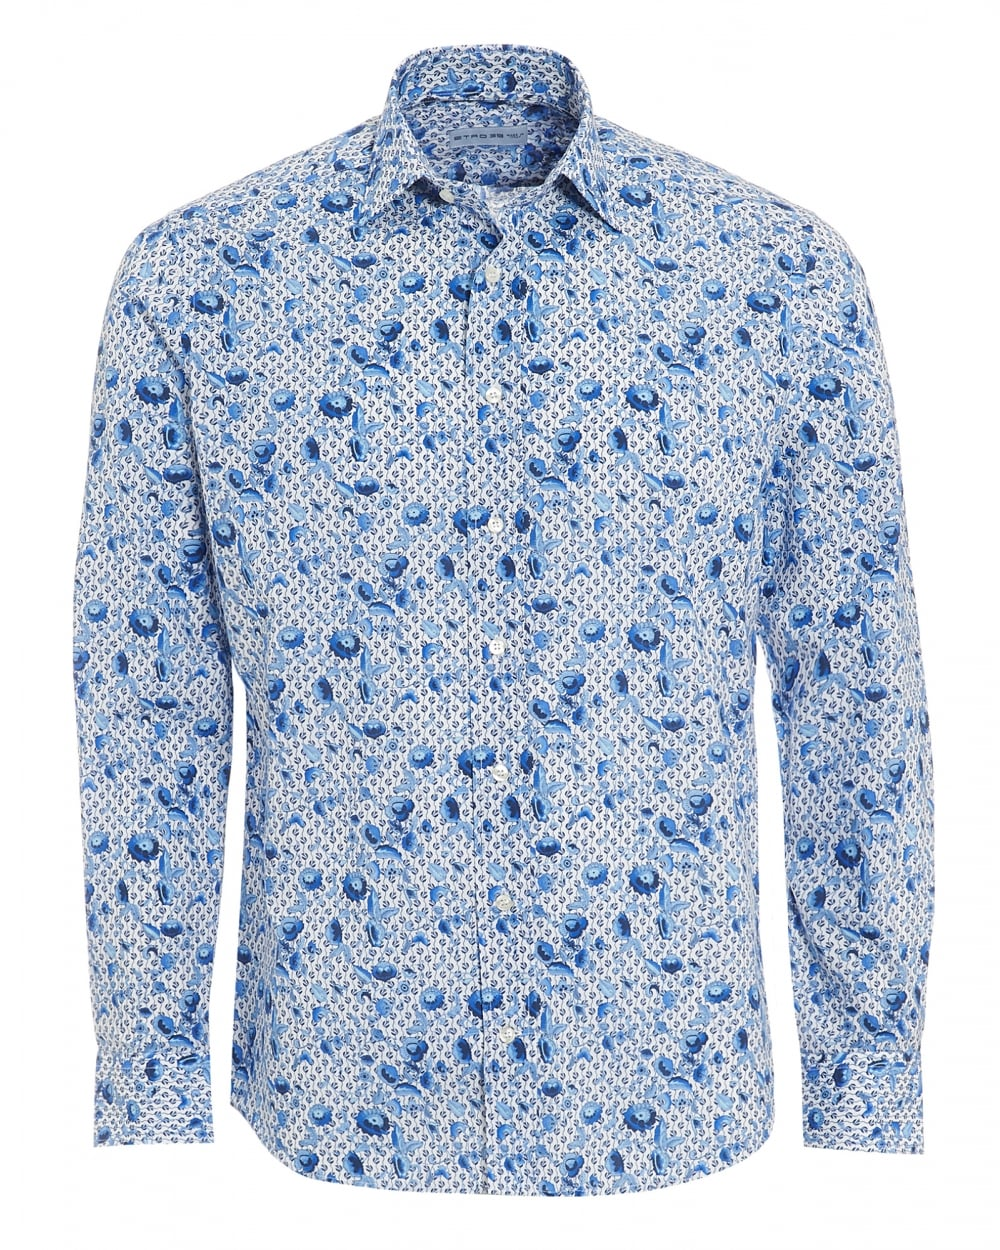 Etro Mens Micro Leaves Floral Shirt, Regular Fit White Blue Shirt